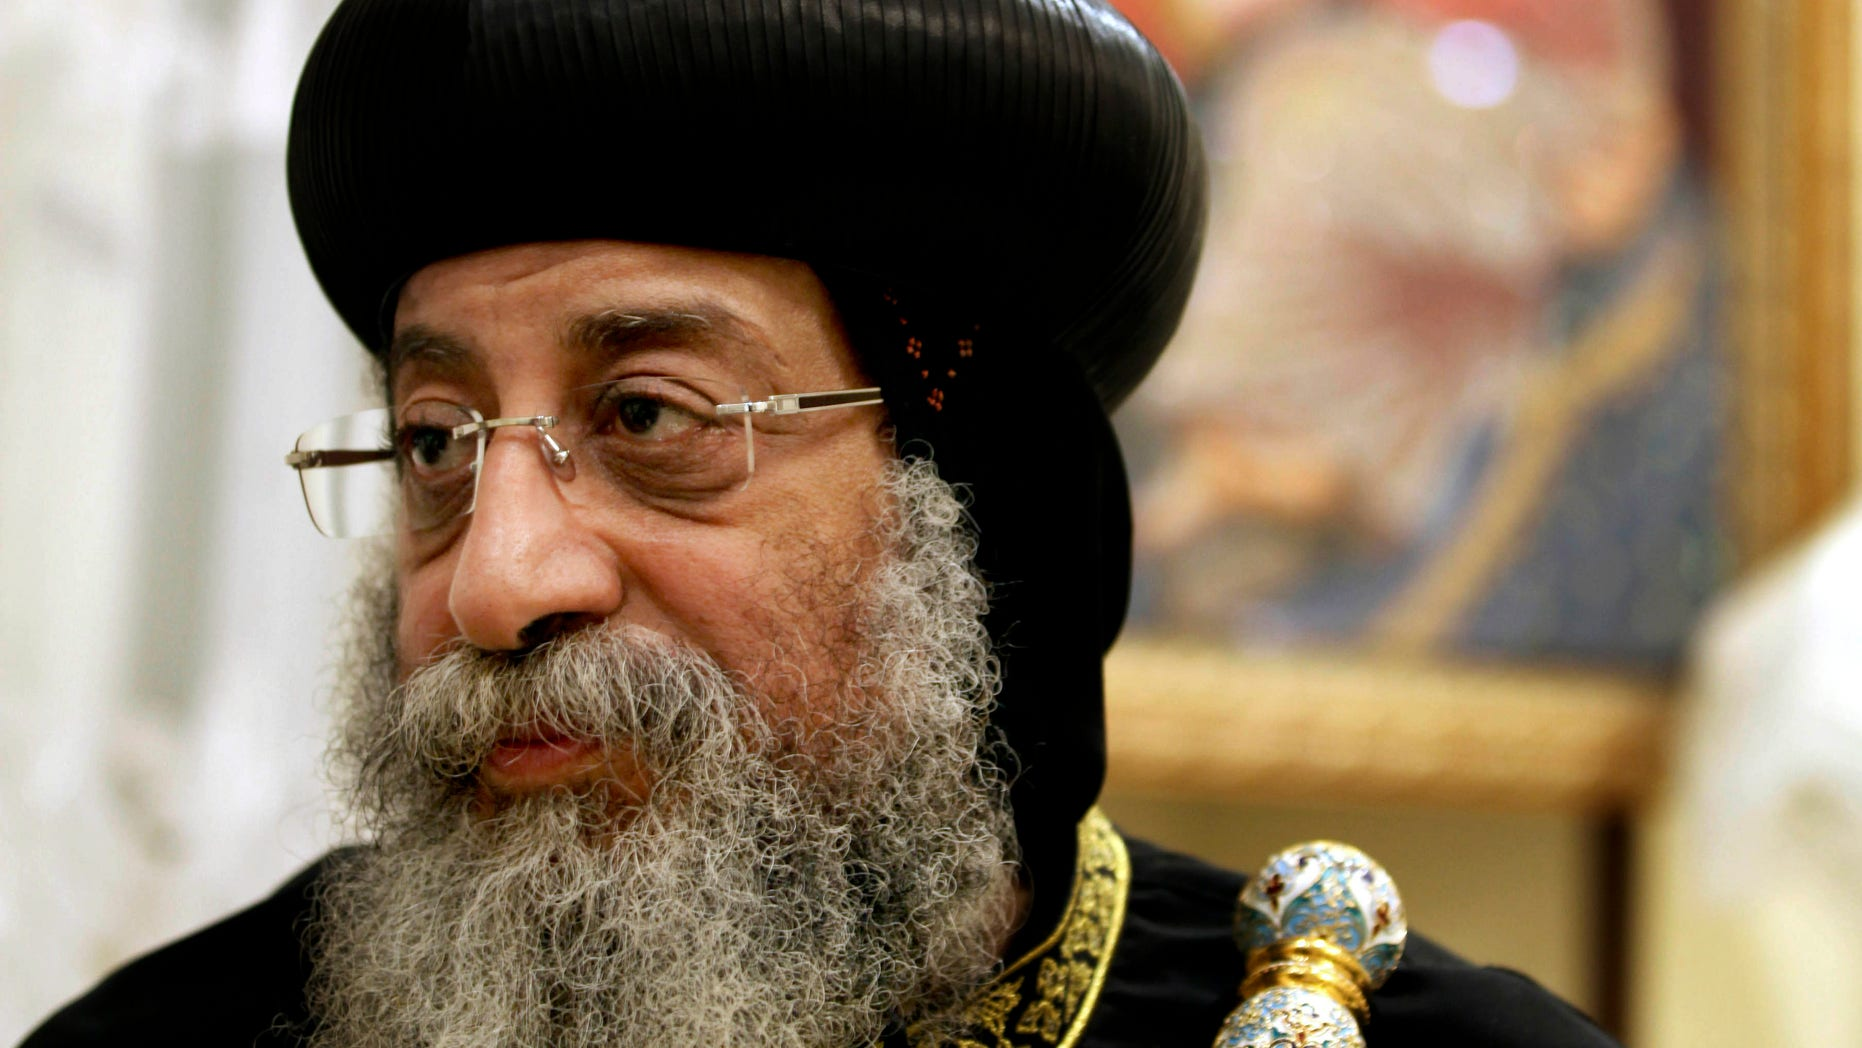 Feb. 5, 2013: In this file photo, Egypt's Coptic Christian Pope, Tawadros II speaks to The Associated Press in the province of Assiut, Egypt. Christians angered by the killing of four Christians in weekend sectarian violence clashed Sunday after a funeral with a mob throwing rocks and firebombs, killing at least one person and turning Cairo's main Coptic cathedral into a battleground. Tawadros who was not in the cathedral, his headquarters, during the funeral and the violence that followed, called for calm as the specter of sectarian violence threatened to spread to the rest of the country.